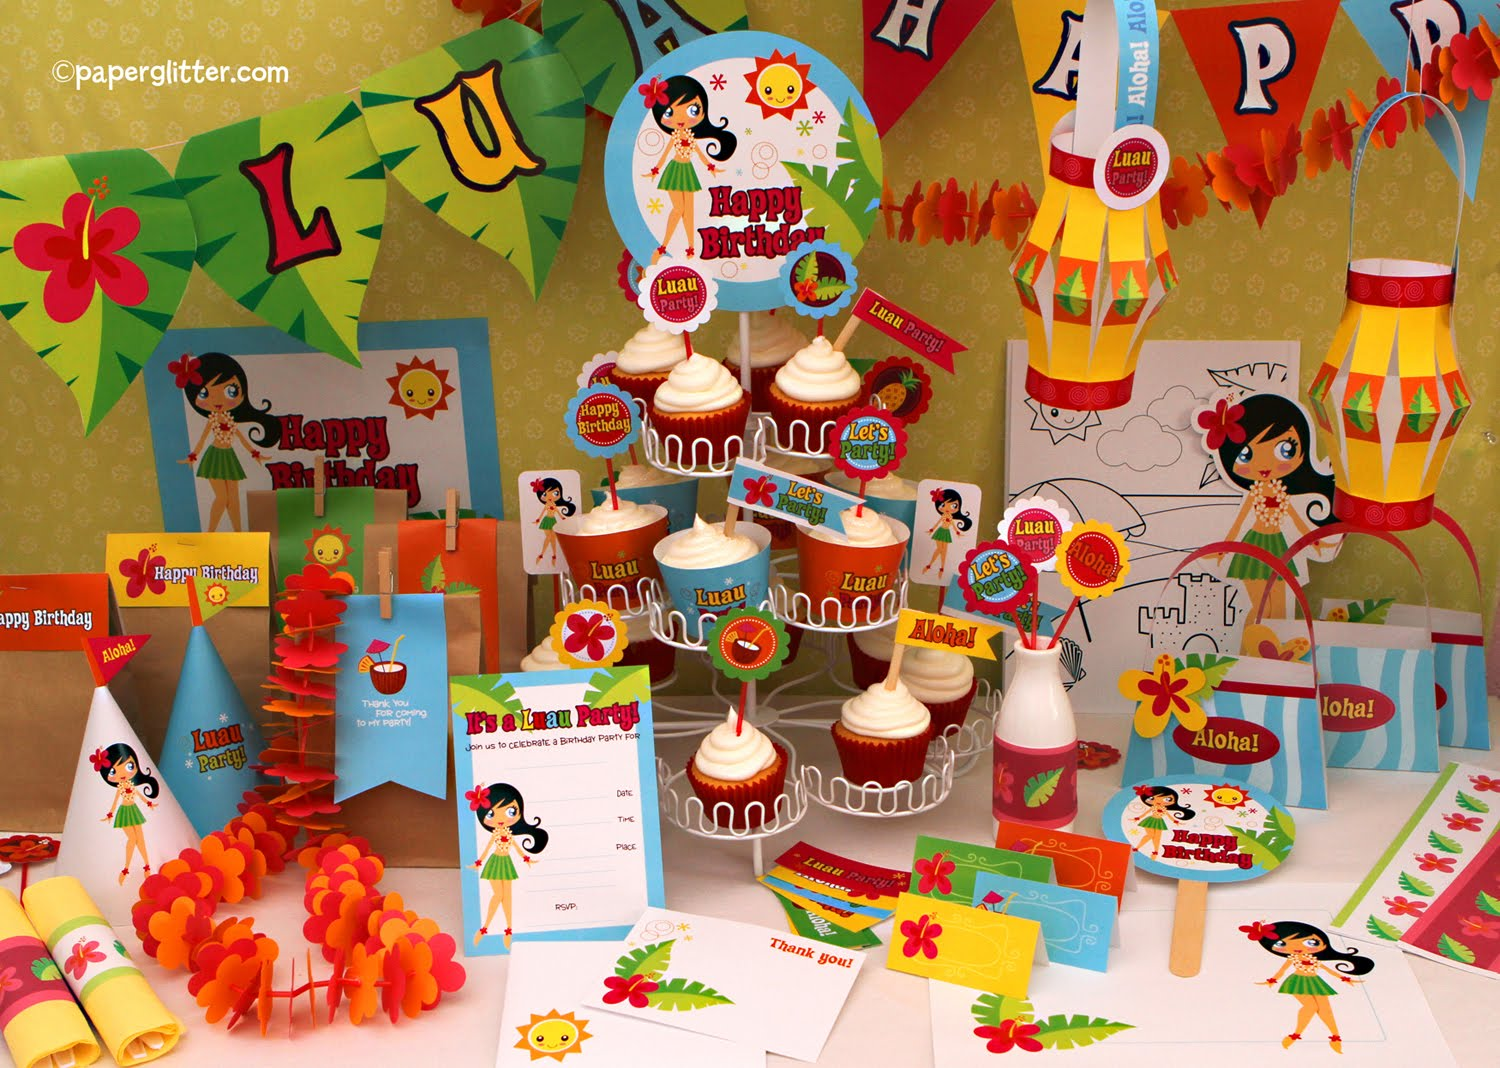 Party printable giveaway and free cupcake toppers skip to my lou linnette of paper glitter is offering the luau party cupcake toppers for free these would be perfect for adding a little accent to your summer parties jeuxipadfo Gallery